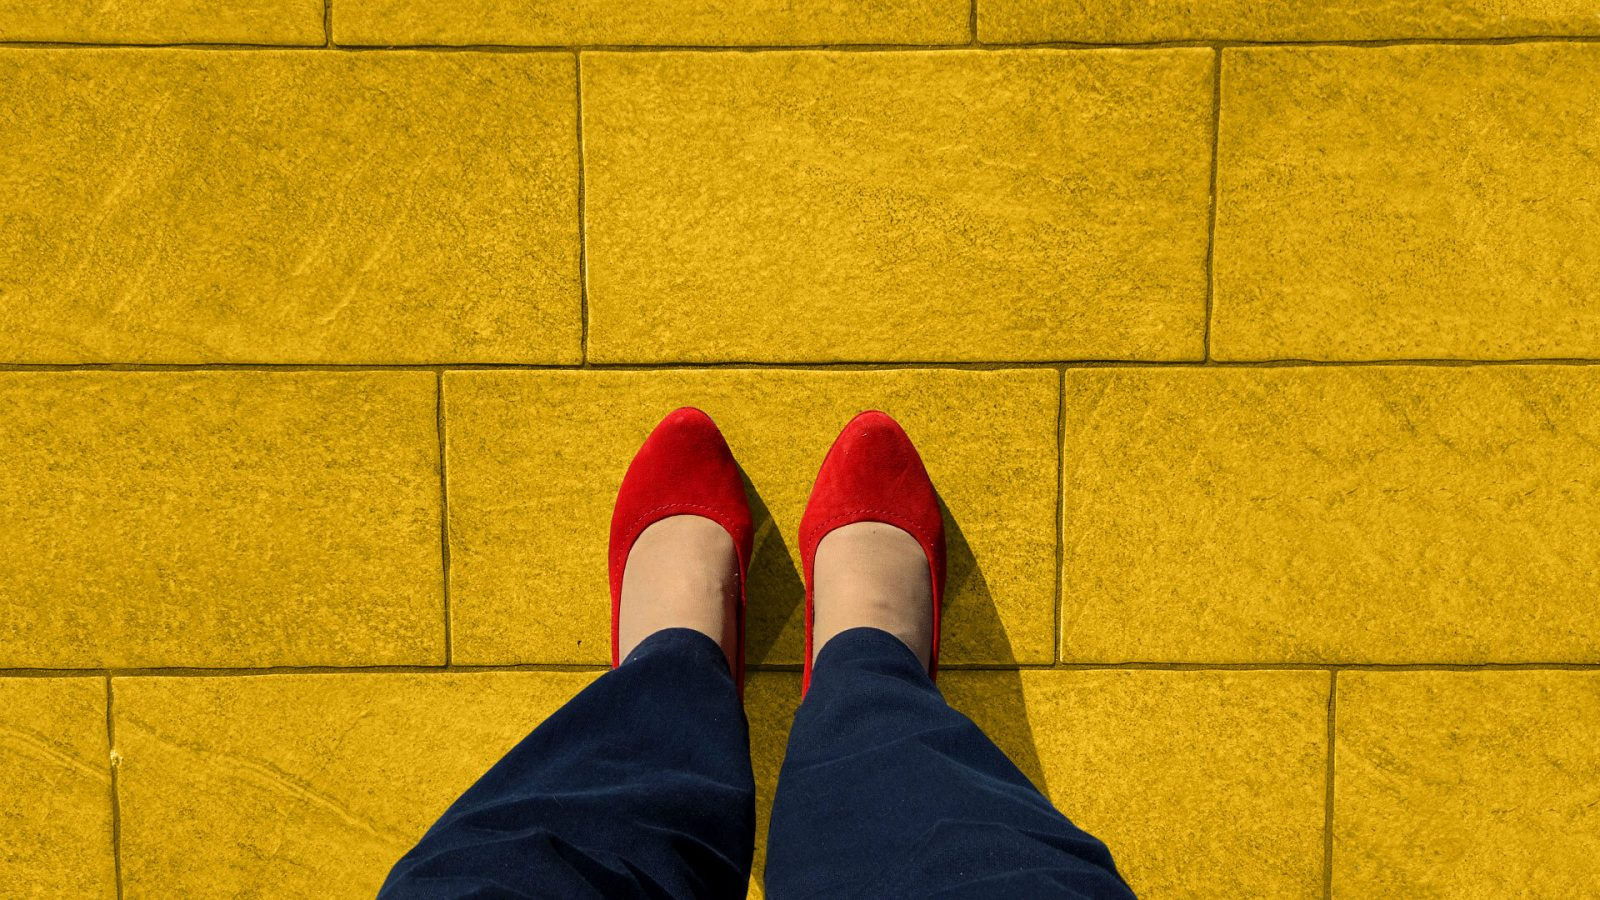 Overhead view of legs and red shoes on yellow road